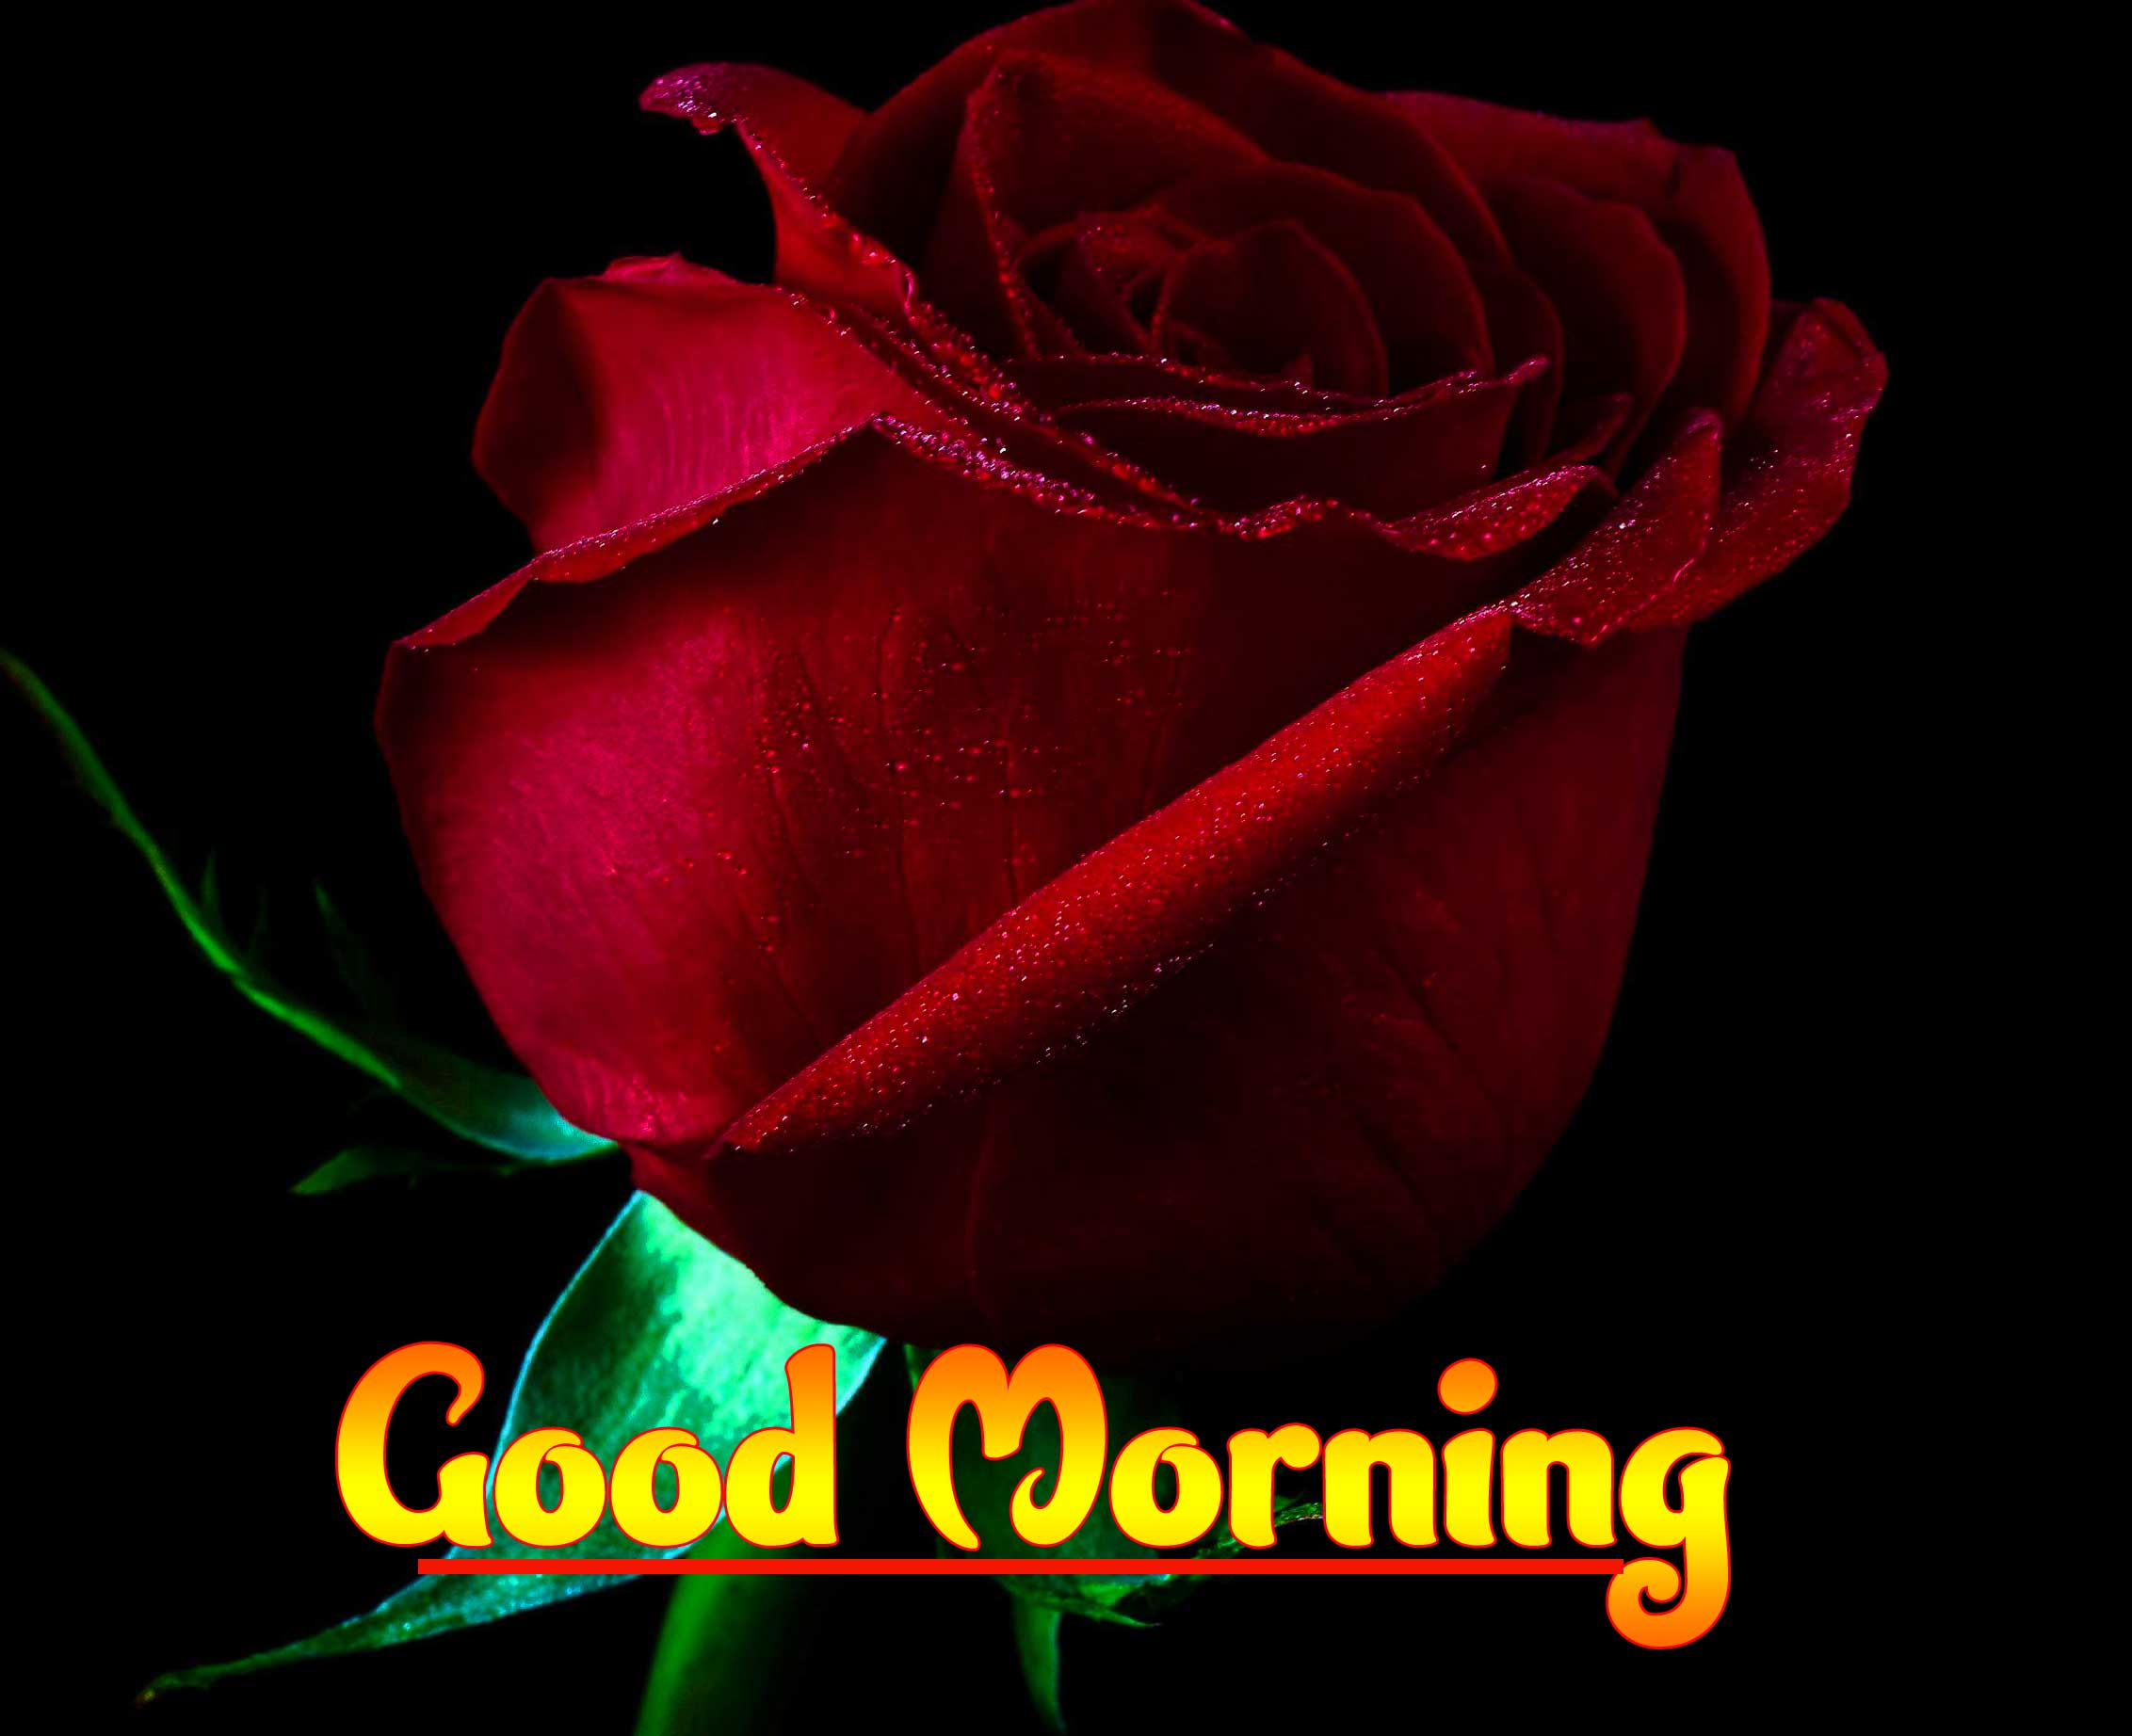 Good Morning Photo Wallpaper for Facebook